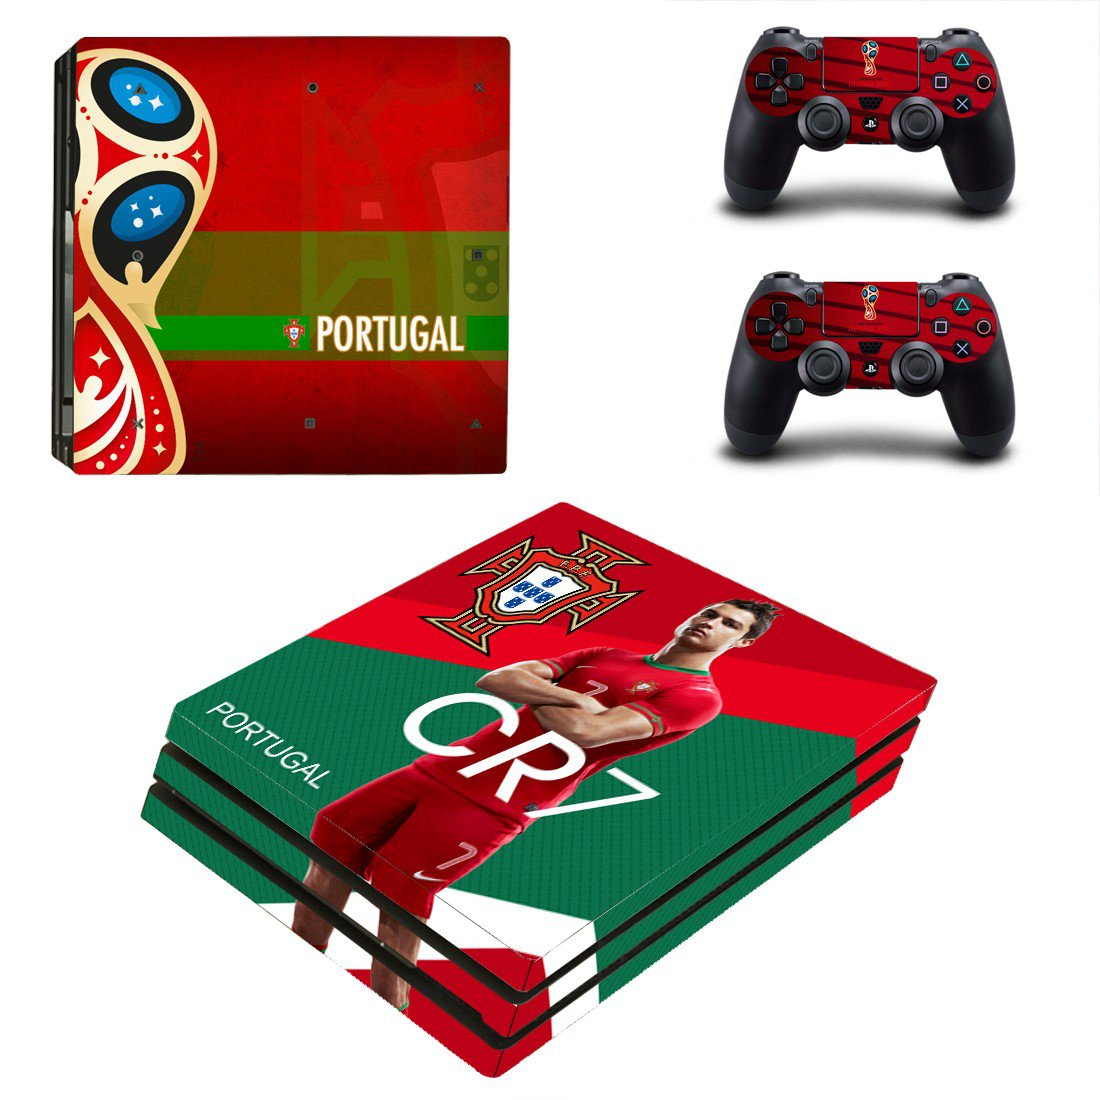 2018 FIFA World Cup Portugal decal skin sticker for PS4 Pro console and controllers